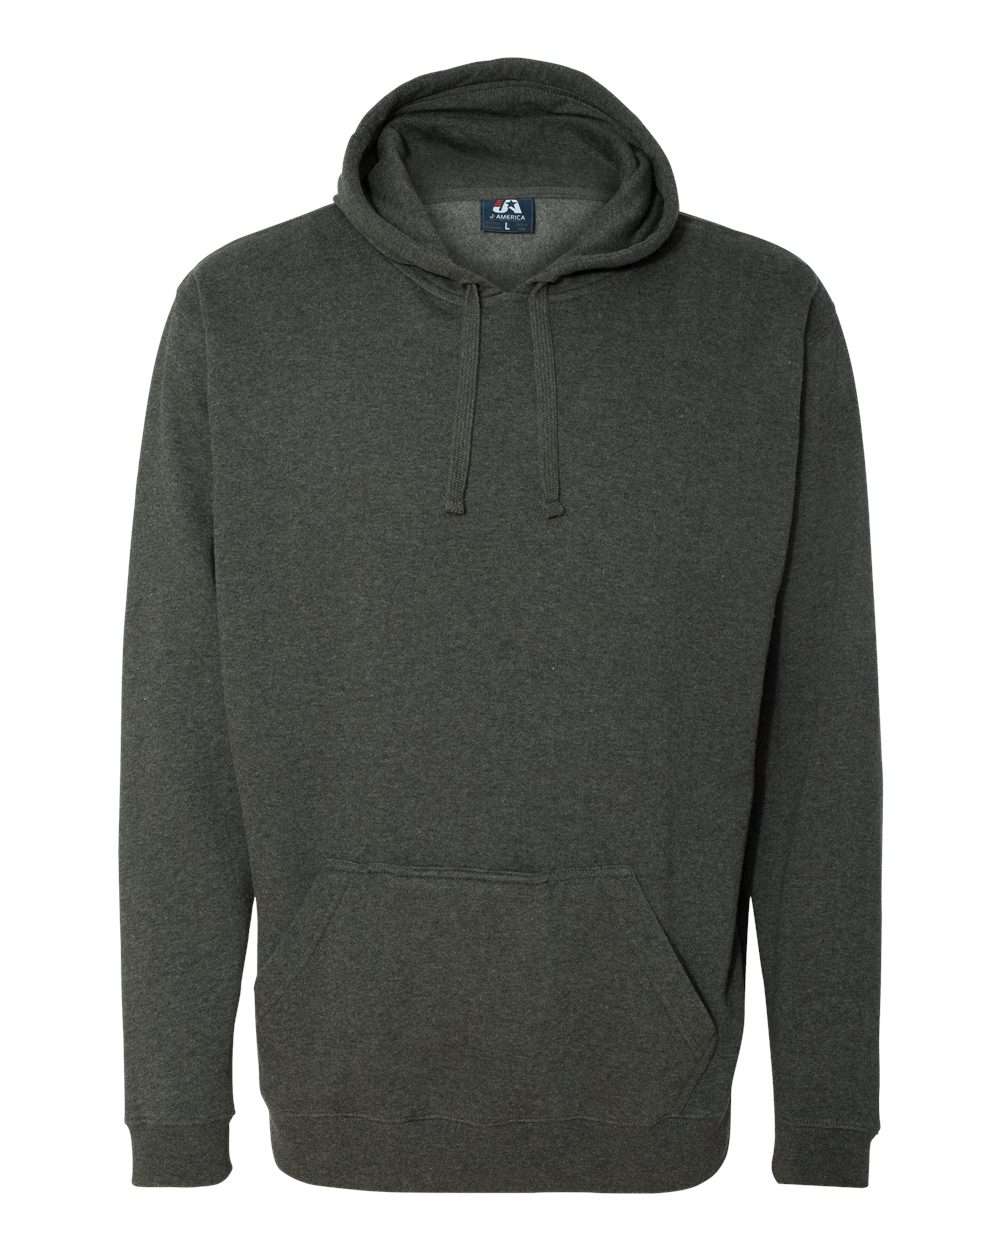 J-America-Tailgate-Hooded-Sweatshirt-with-beverage-holder-Pocket-8815-up-to-3XL thumbnail 9